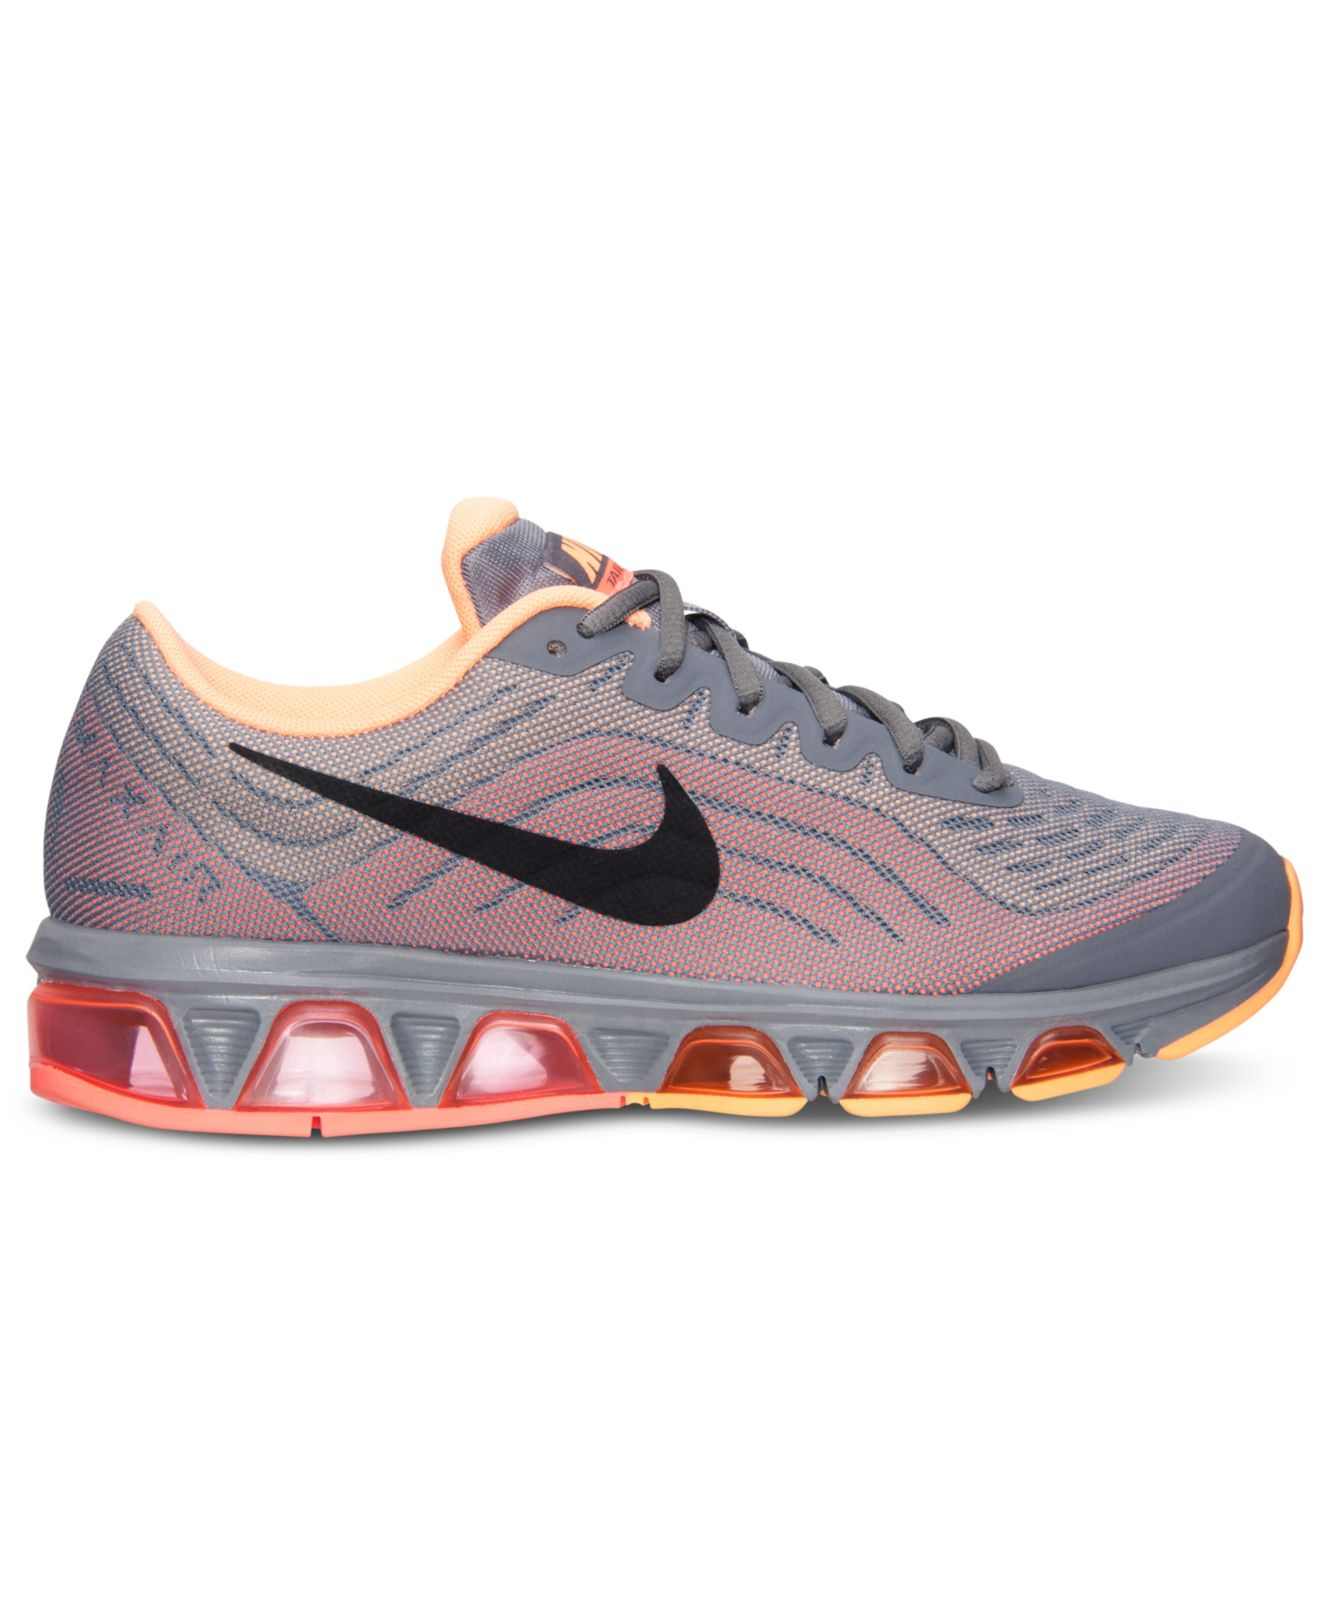 Details about NIKE AIR MAX TAILWIND 6 WOMEN'S RUNNING SHOES 621226 400 SIZE 8.5